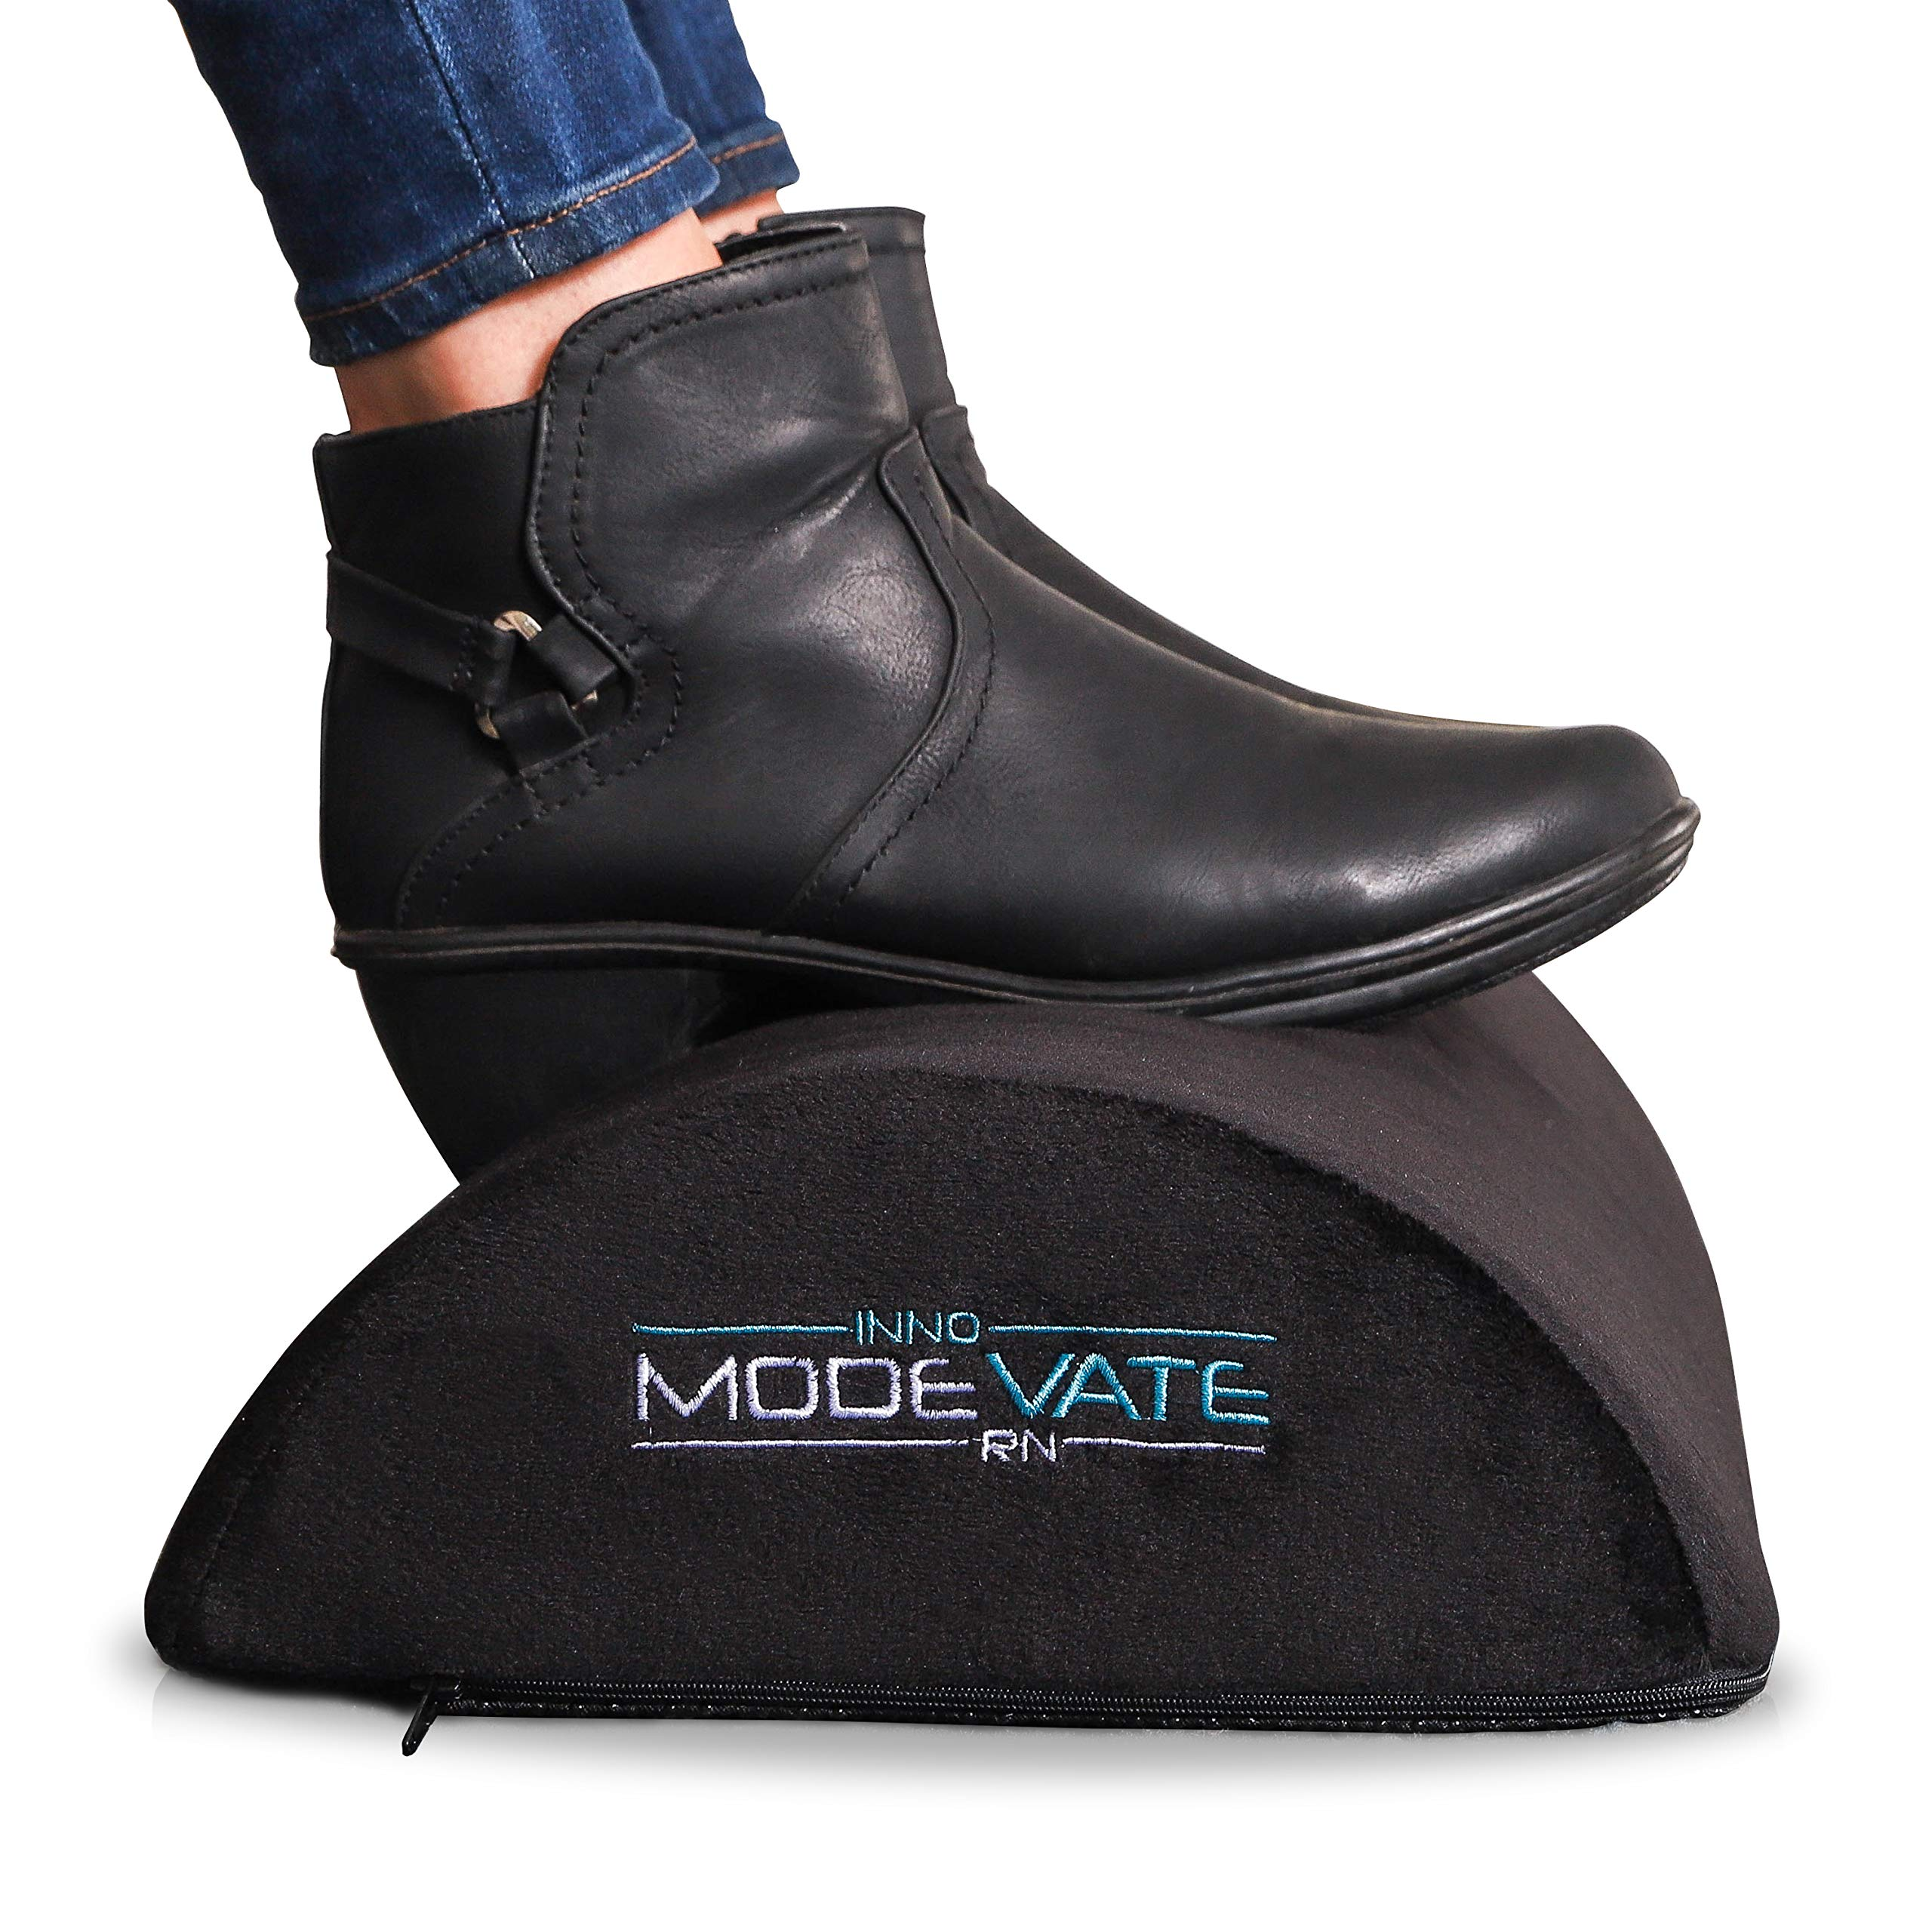 Modevate Ergonomic Desk Foot Rest Cushion for Office or Home, Black, MO-001 by Modevate